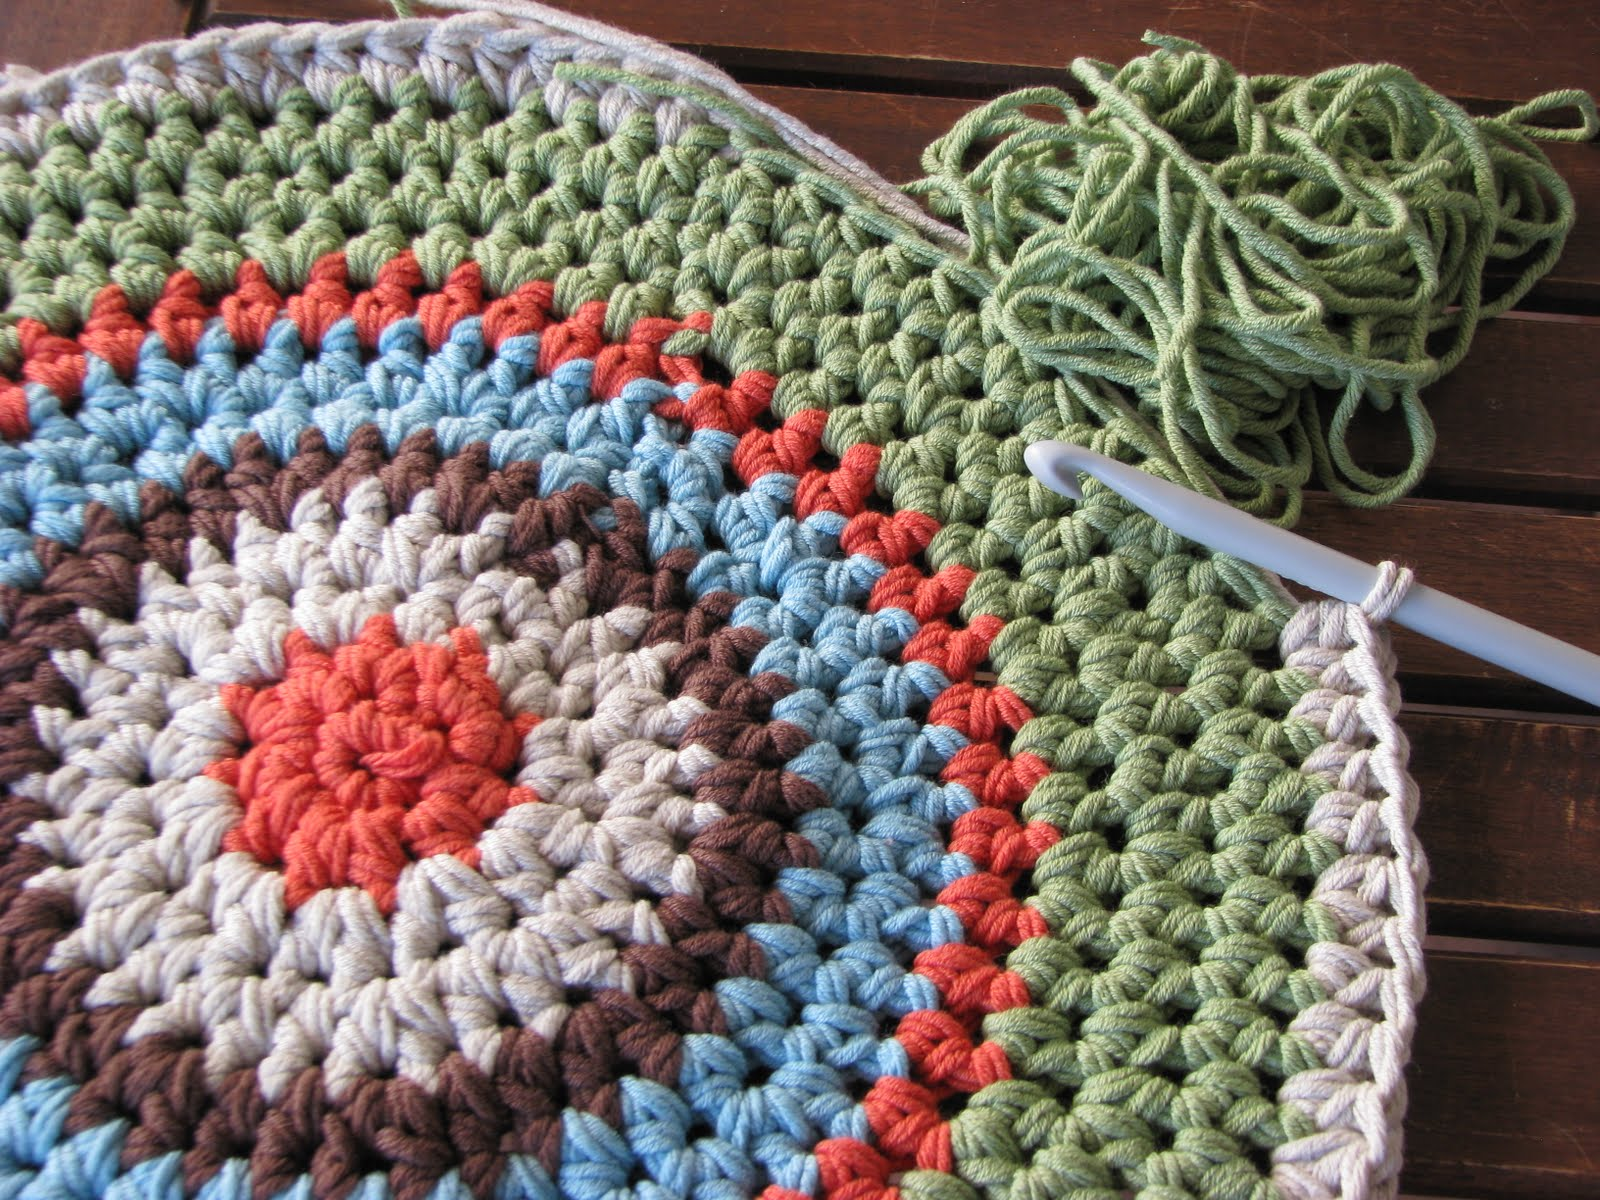 Free Crochet Yarn : CROCHET YARN RUGS FREE PATTERNS ? Crochet Projects